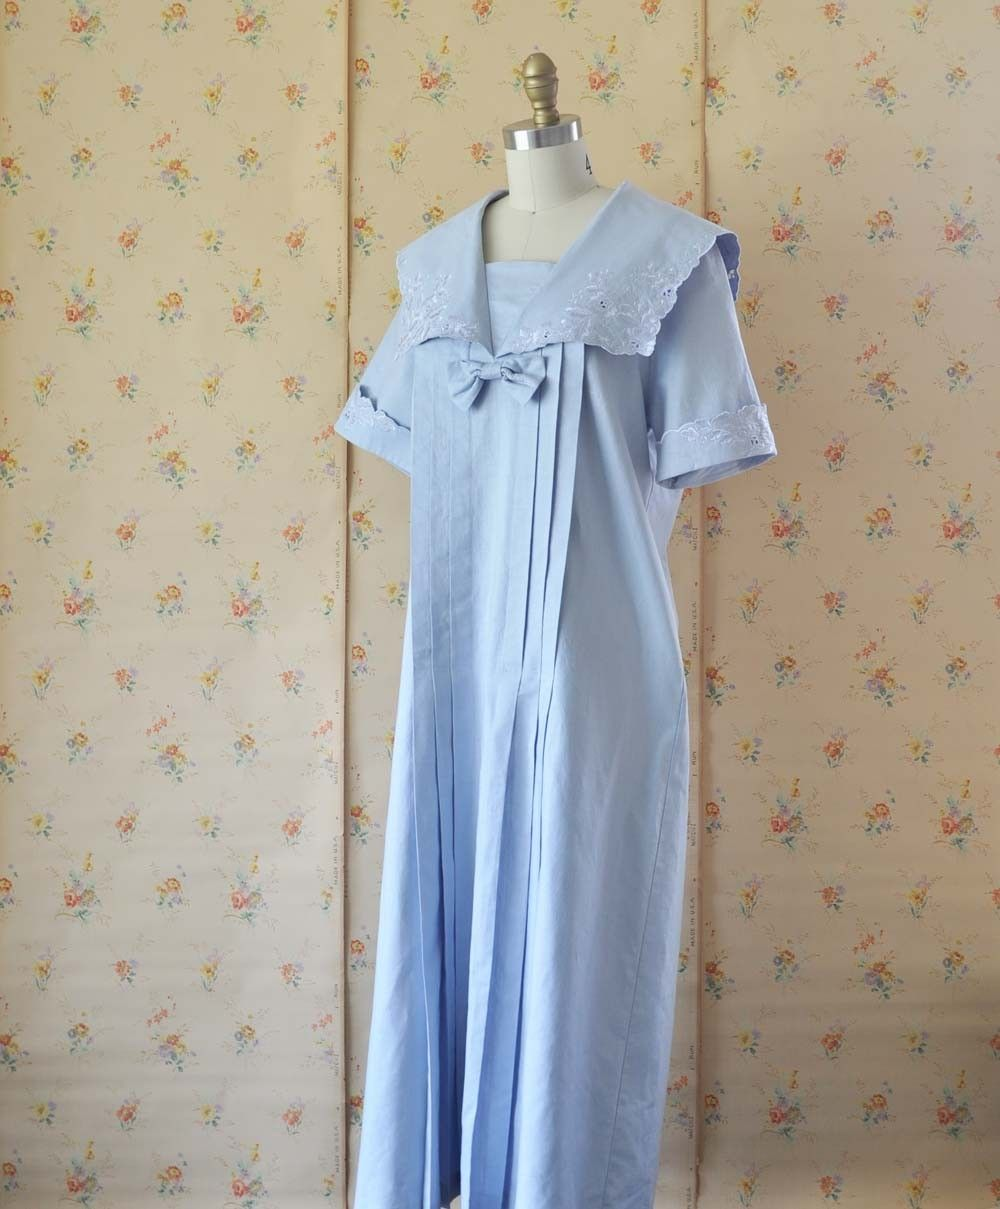 laura ashley wedding dresses Vintage LAURA ASHLEY Sailor Dress by MariesVintage on Etsy